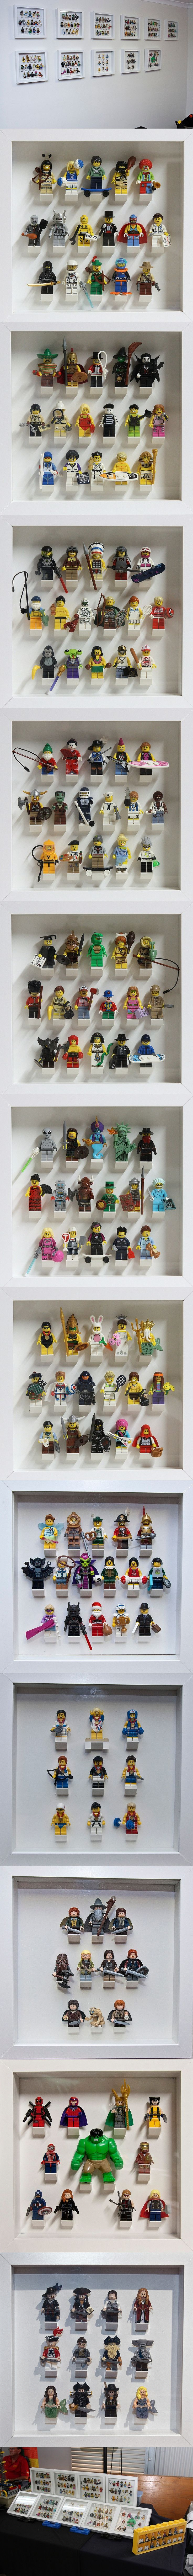 Collectible Minifigures in IKEA Ribba Frames #LEGO #Minifigures #IKEA http://www.Adopt-A-Brick.com/LINK DOESN'T WORK